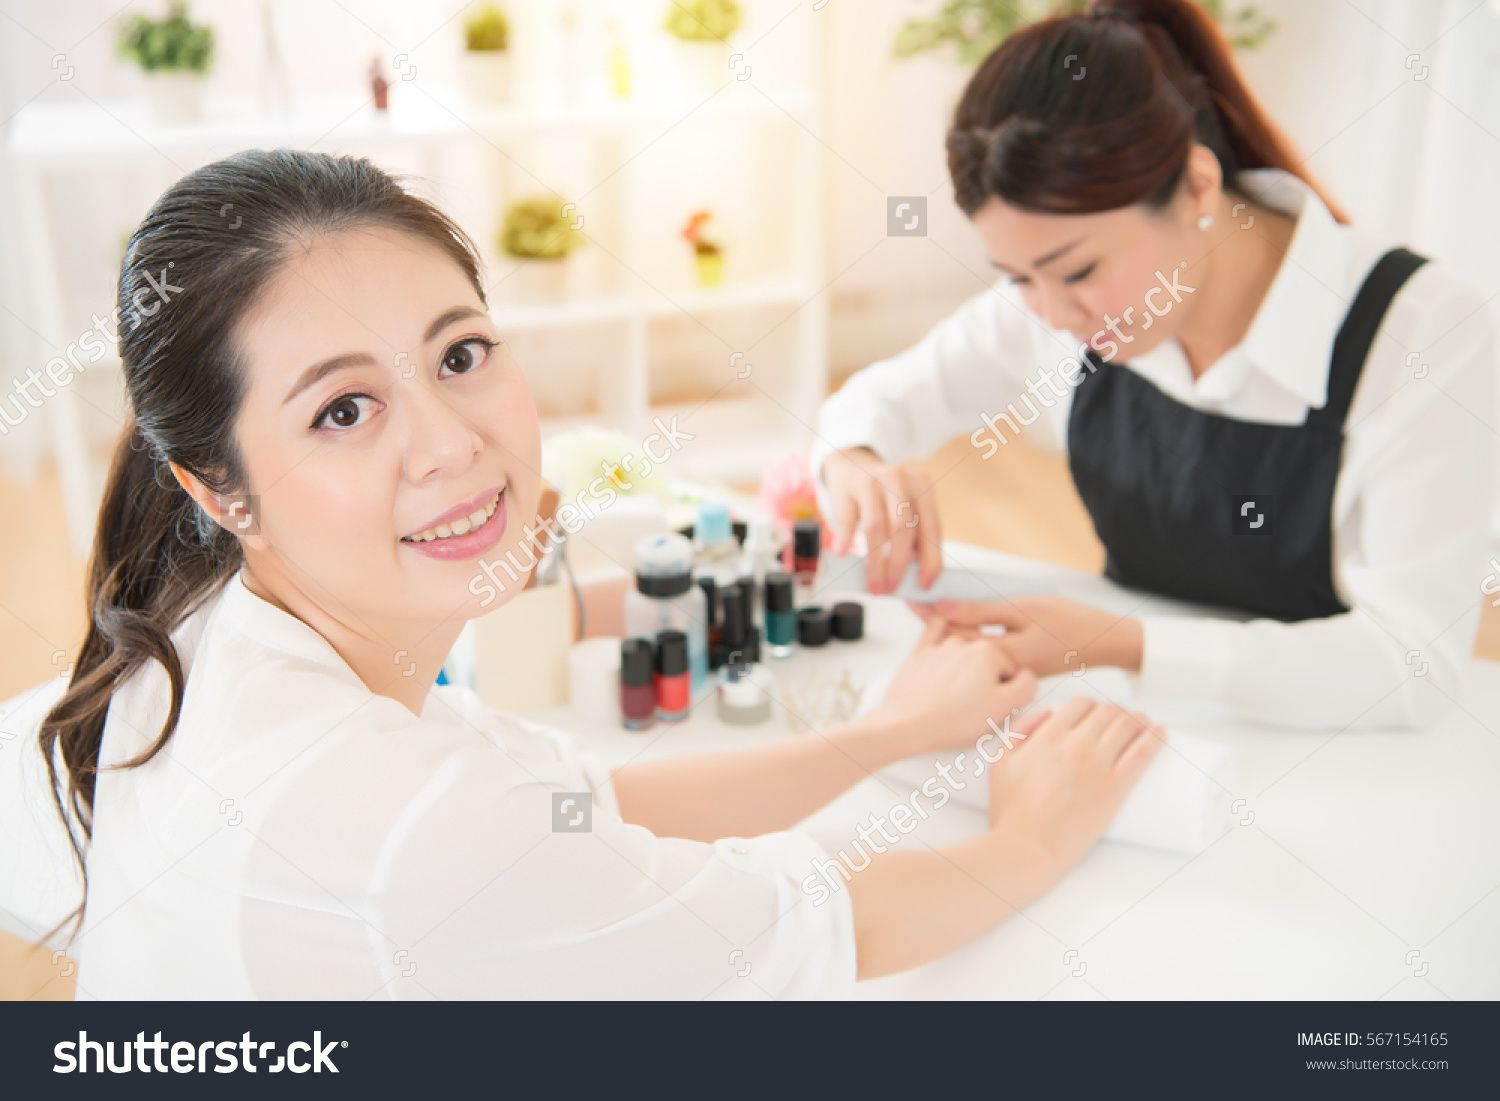 Beautiful Hy Smile Asian Chinese Women Enjoy Doing Manicure With Professional Manicurist Filed Her Nails Real Salon Spa Background Beauty And Fashion